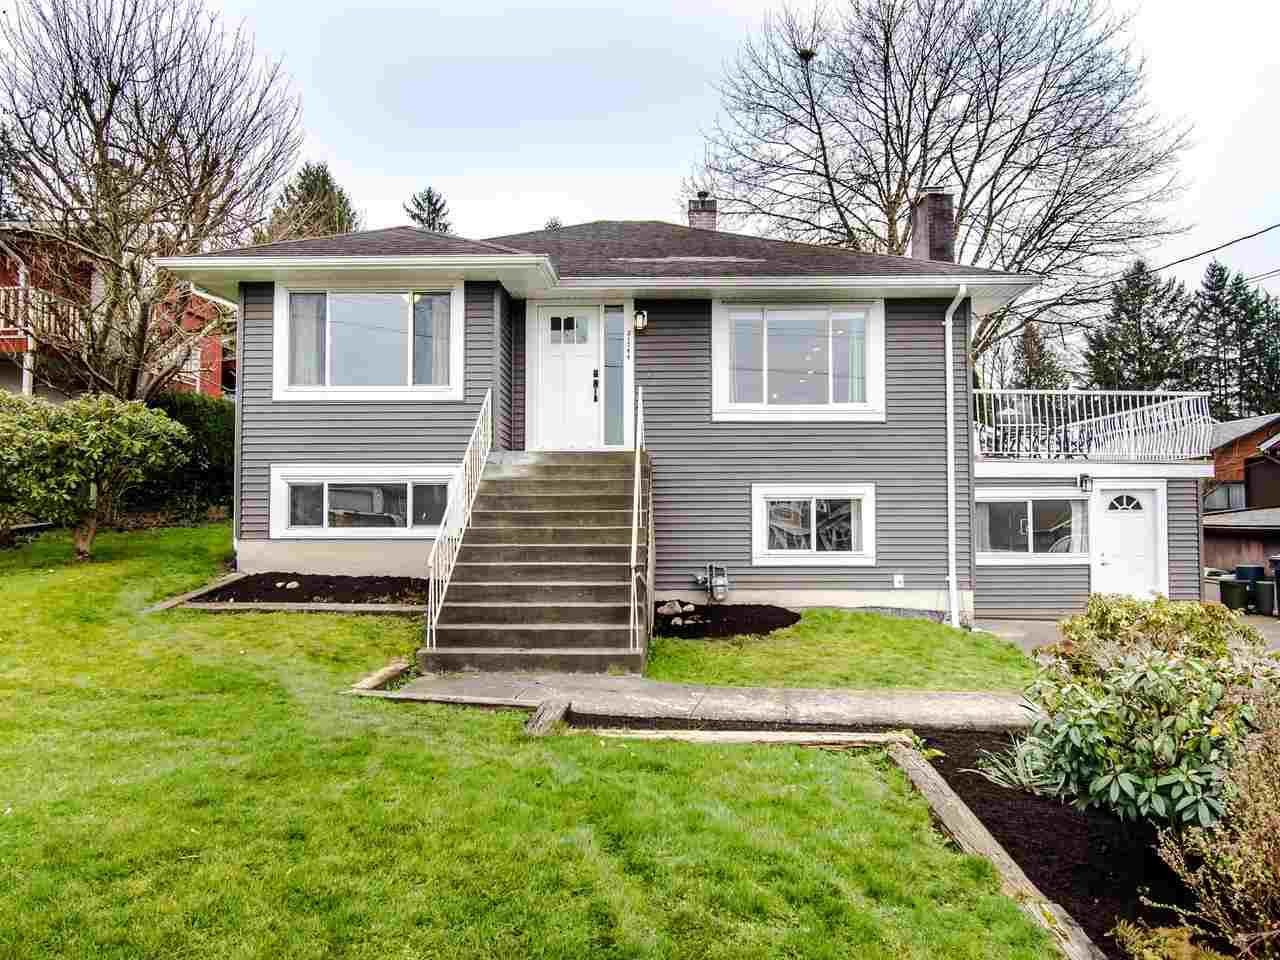 """Main Photo: 21744 48A Avenue in Langley: Murrayville House for sale in """"MURRAYVILLE"""" : MLS®# R2451789"""